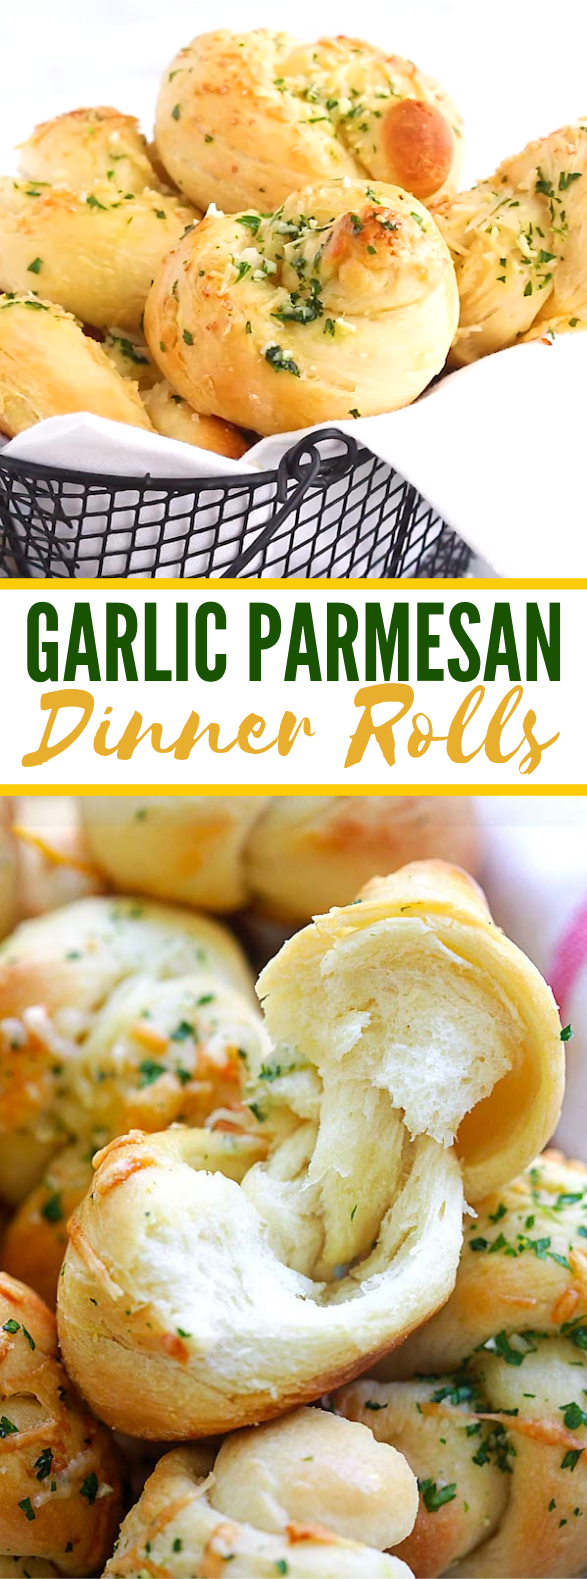 Garlic Parmesan Dinner Rolls #dough #dinnerrecipe